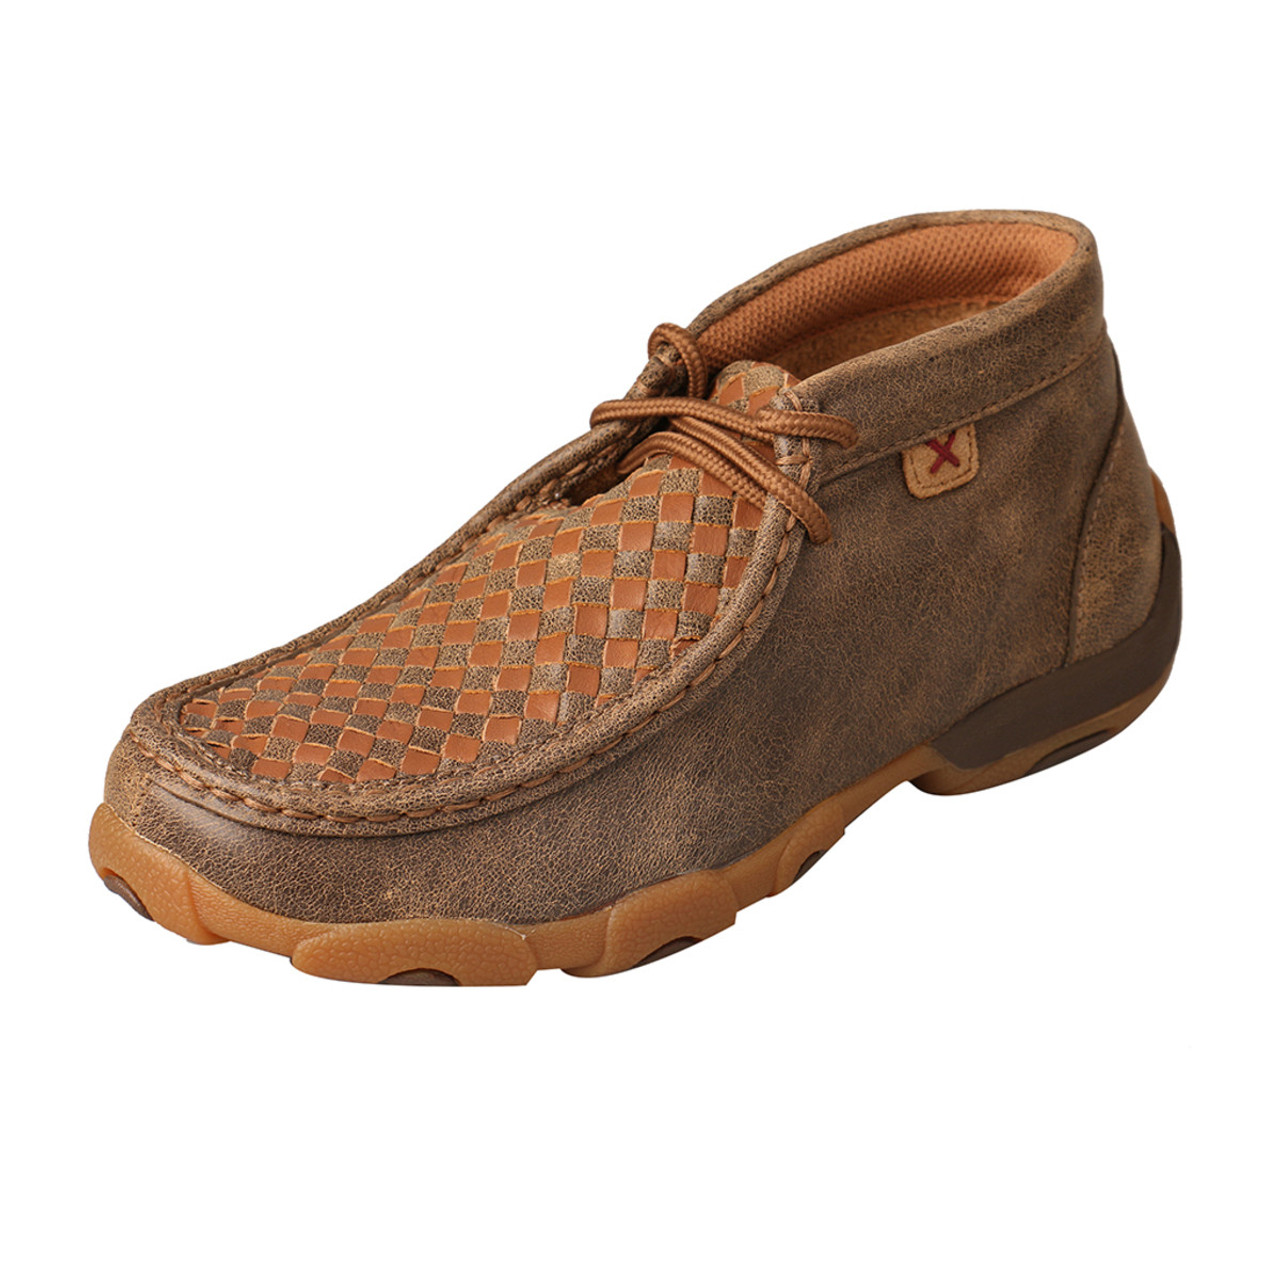 western driving moccasins